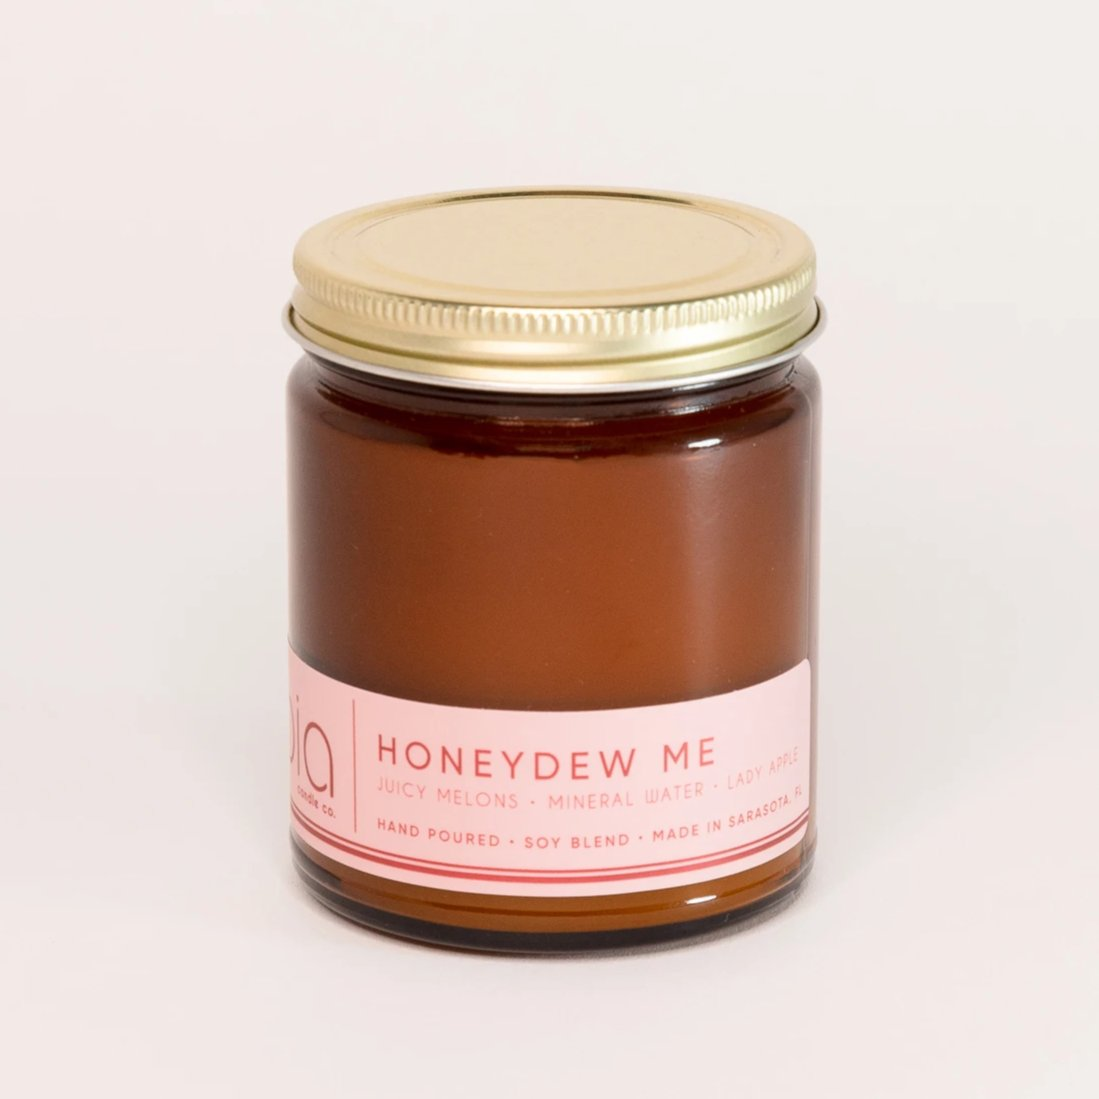 Honeydew Me Classic Candle 50hr Burn - bia candle co